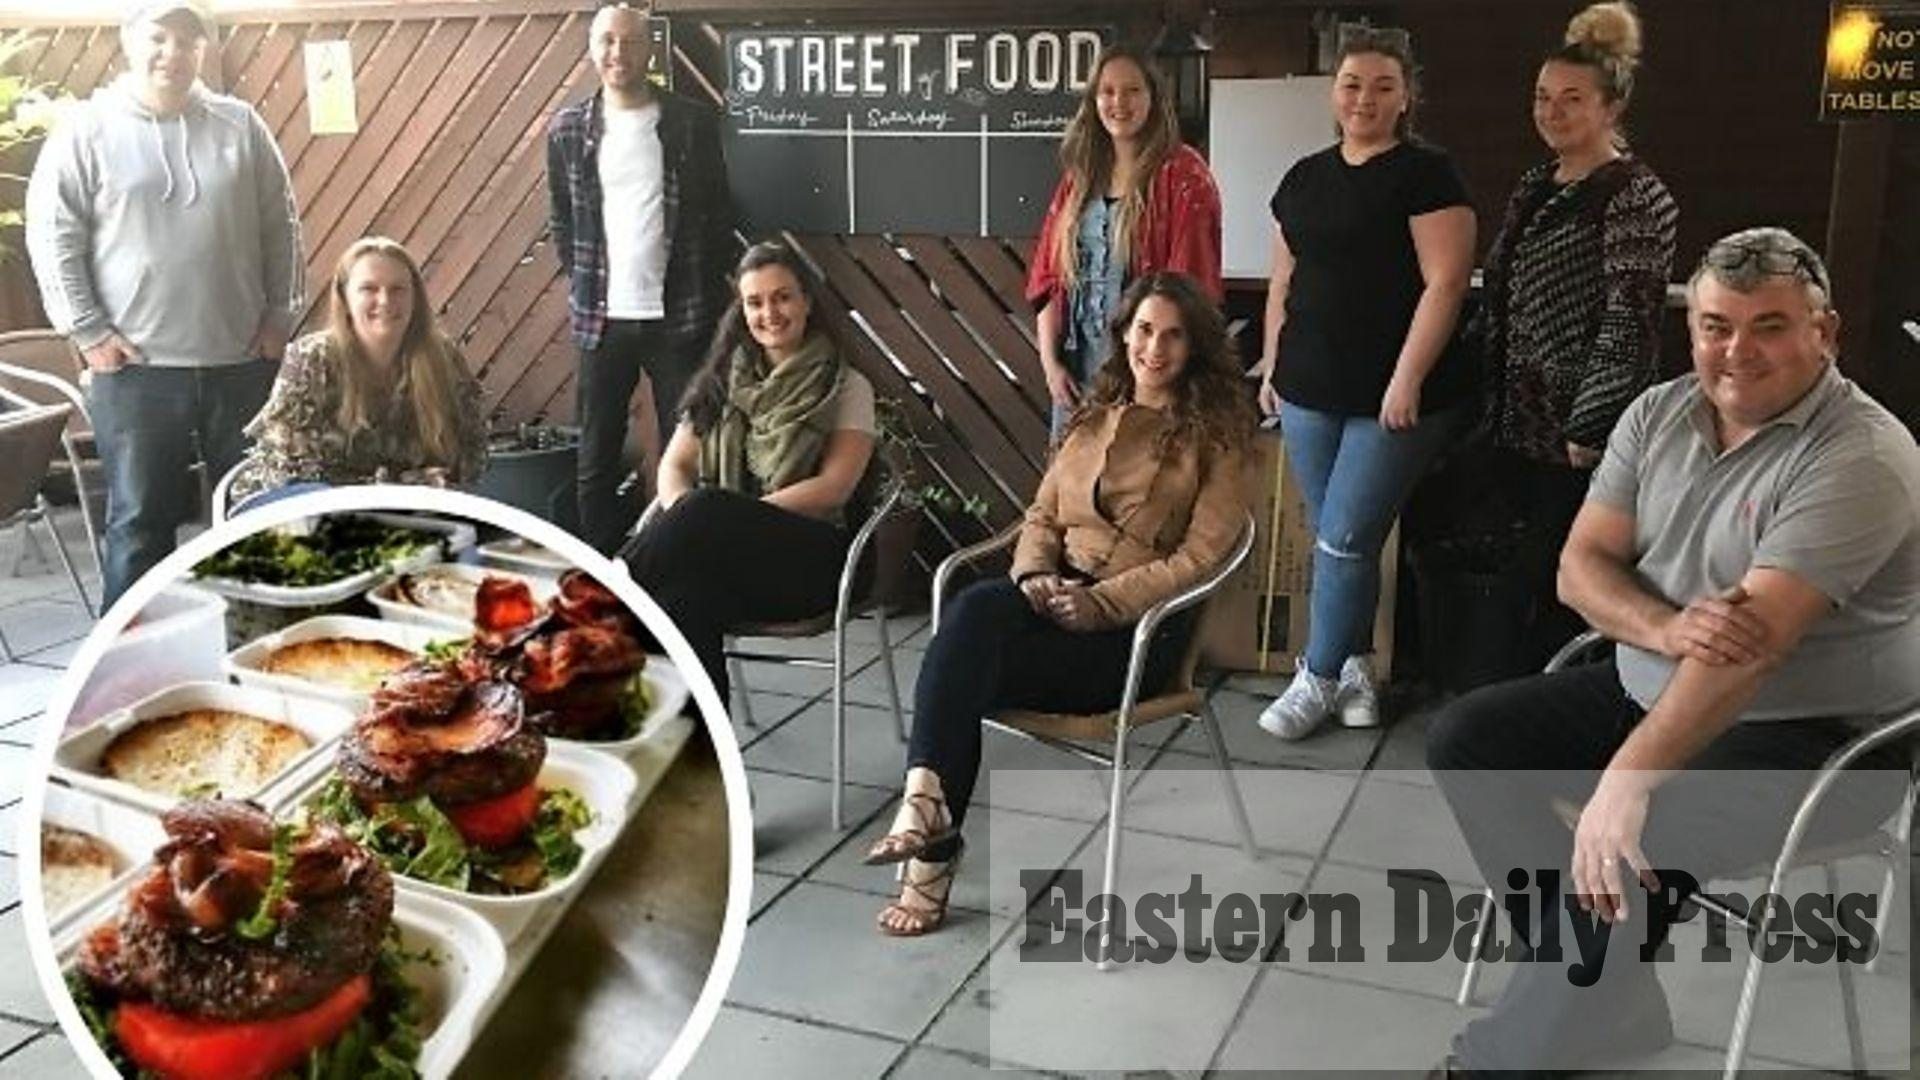 Norwich pub welcomes eight new street food vendors